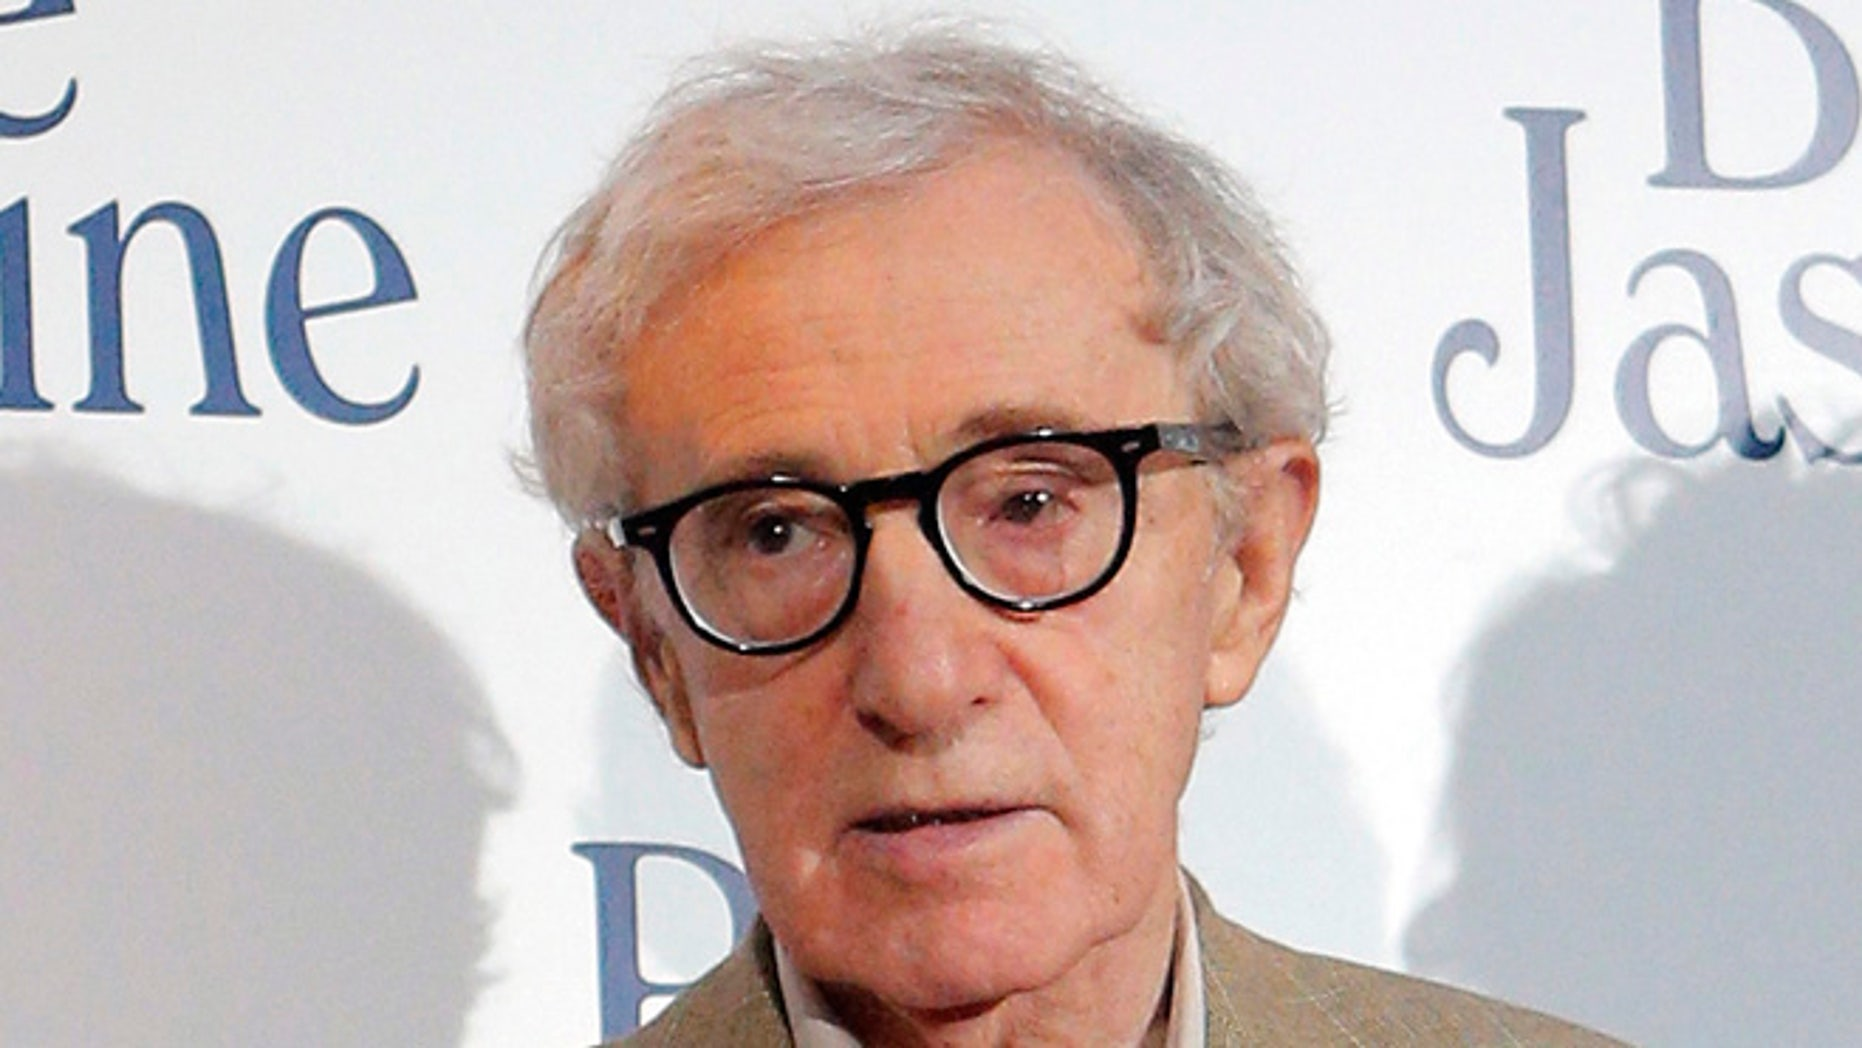 Woody Allen sues Amazon over terminated movie deal